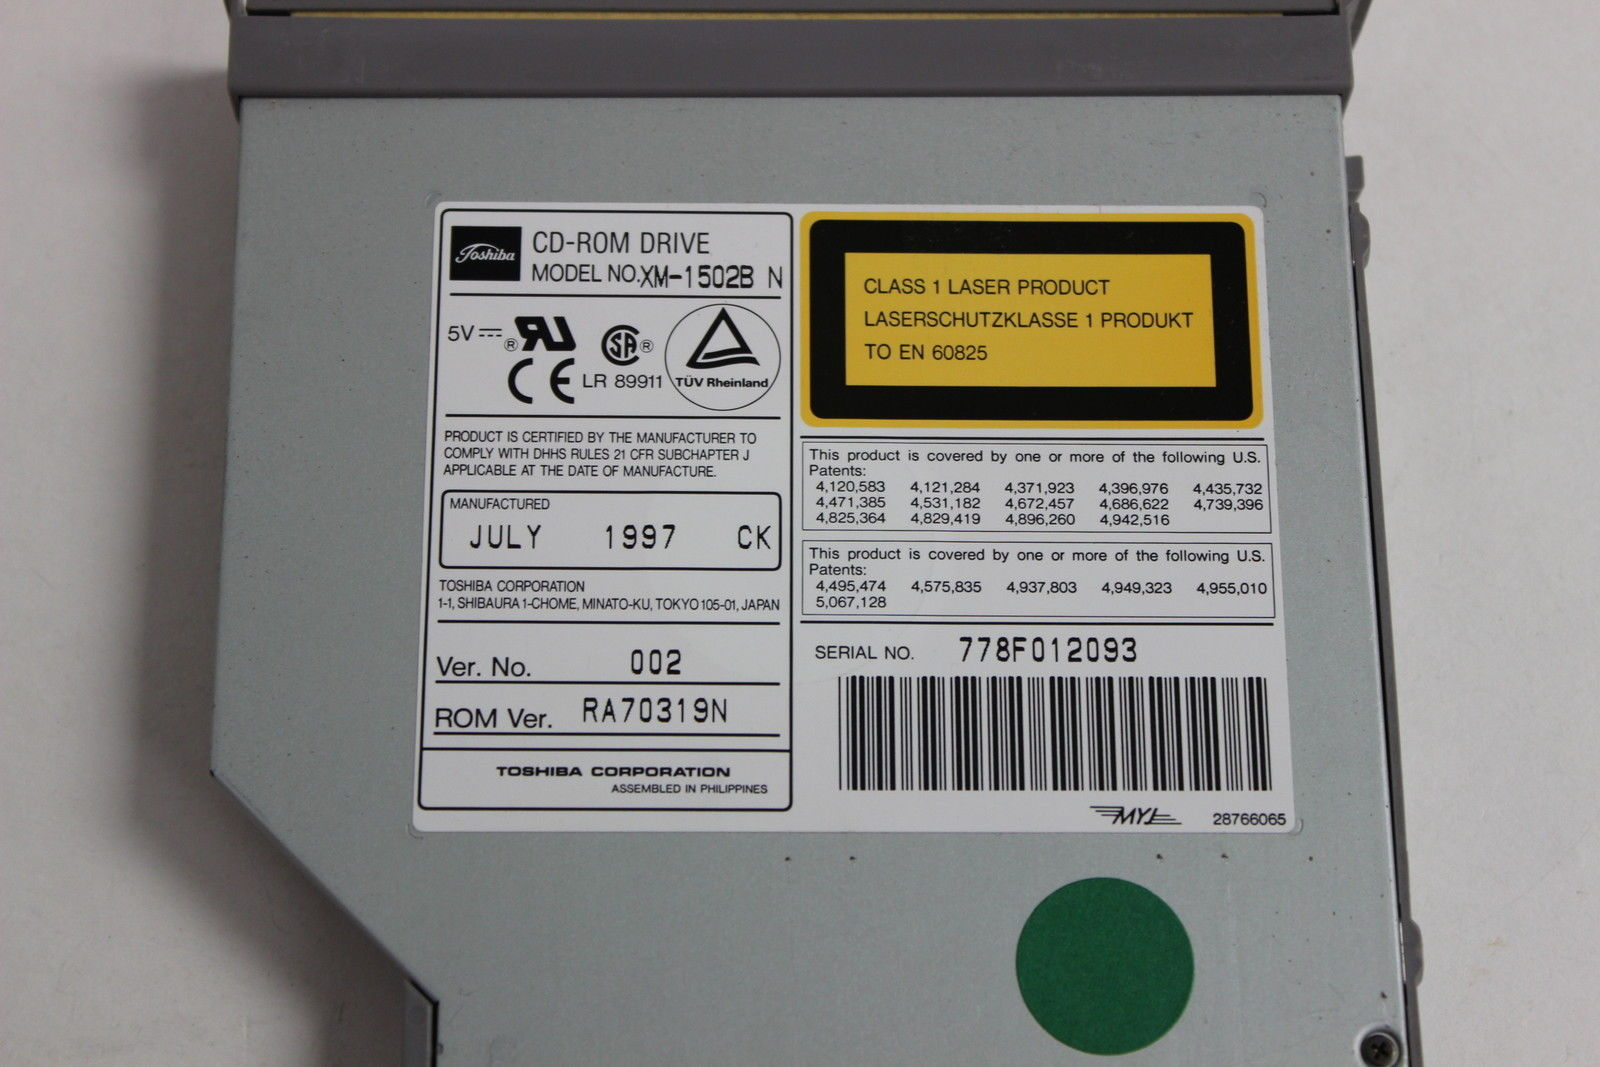 Toshiba XM-1502B N laptop cd-rom drive